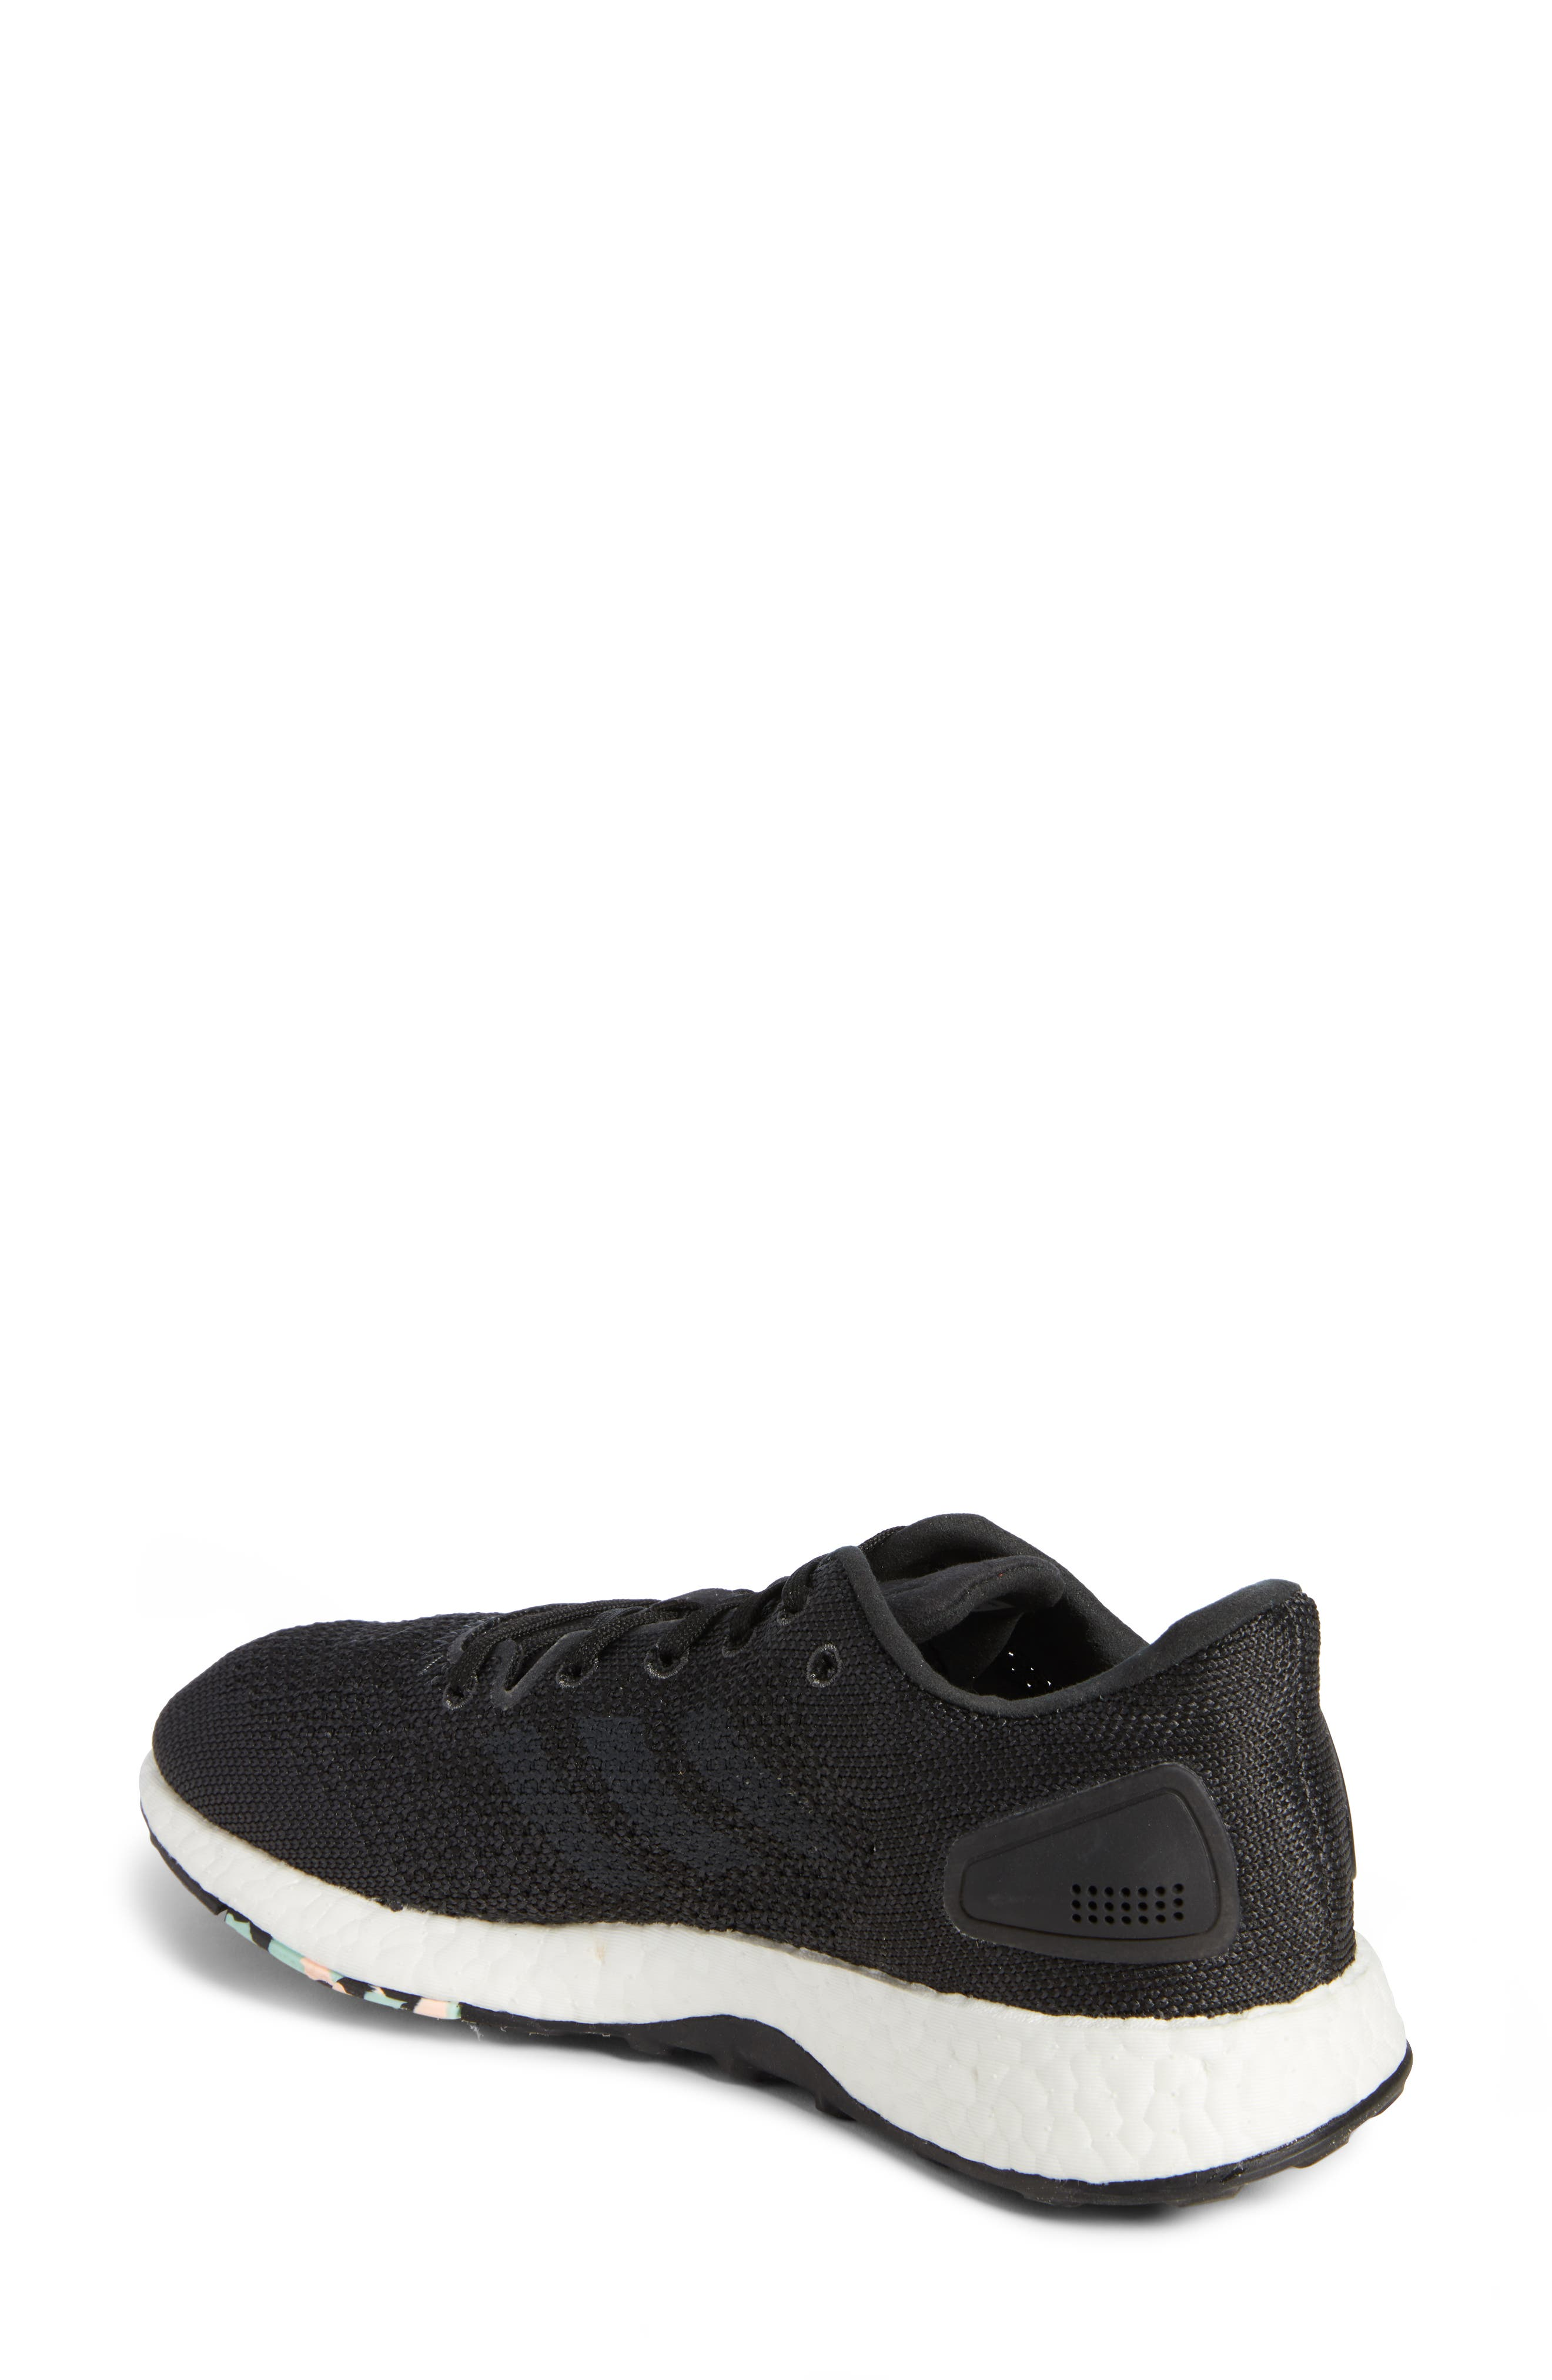 PureBoost DPR Running Shoe,                             Alternate thumbnail 7, color,